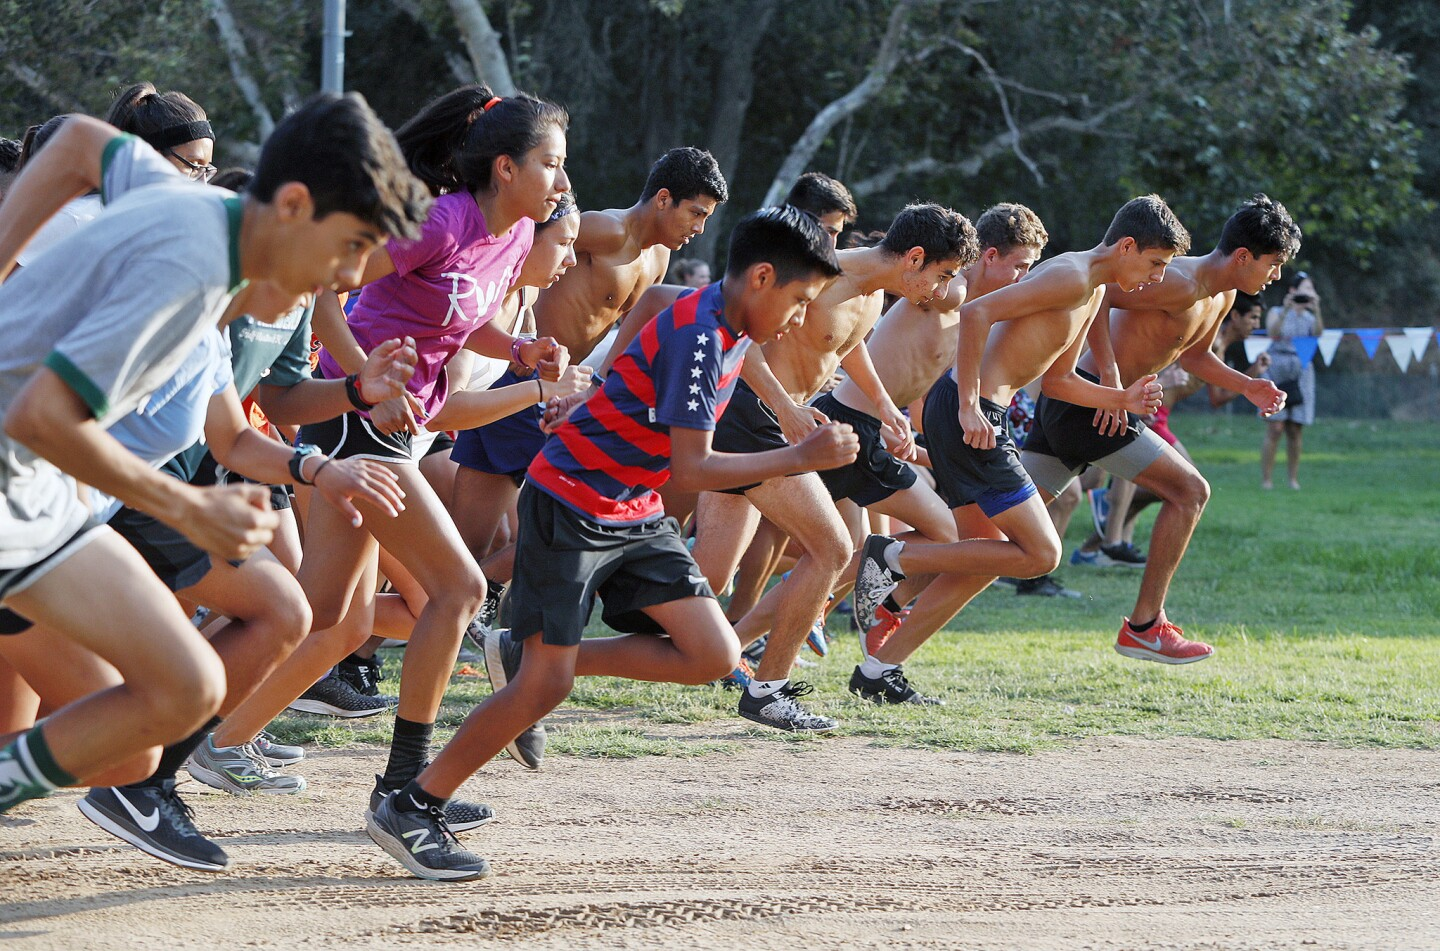 Photo Gallery: Cross-country meet at Crescenta Valley Regional Park